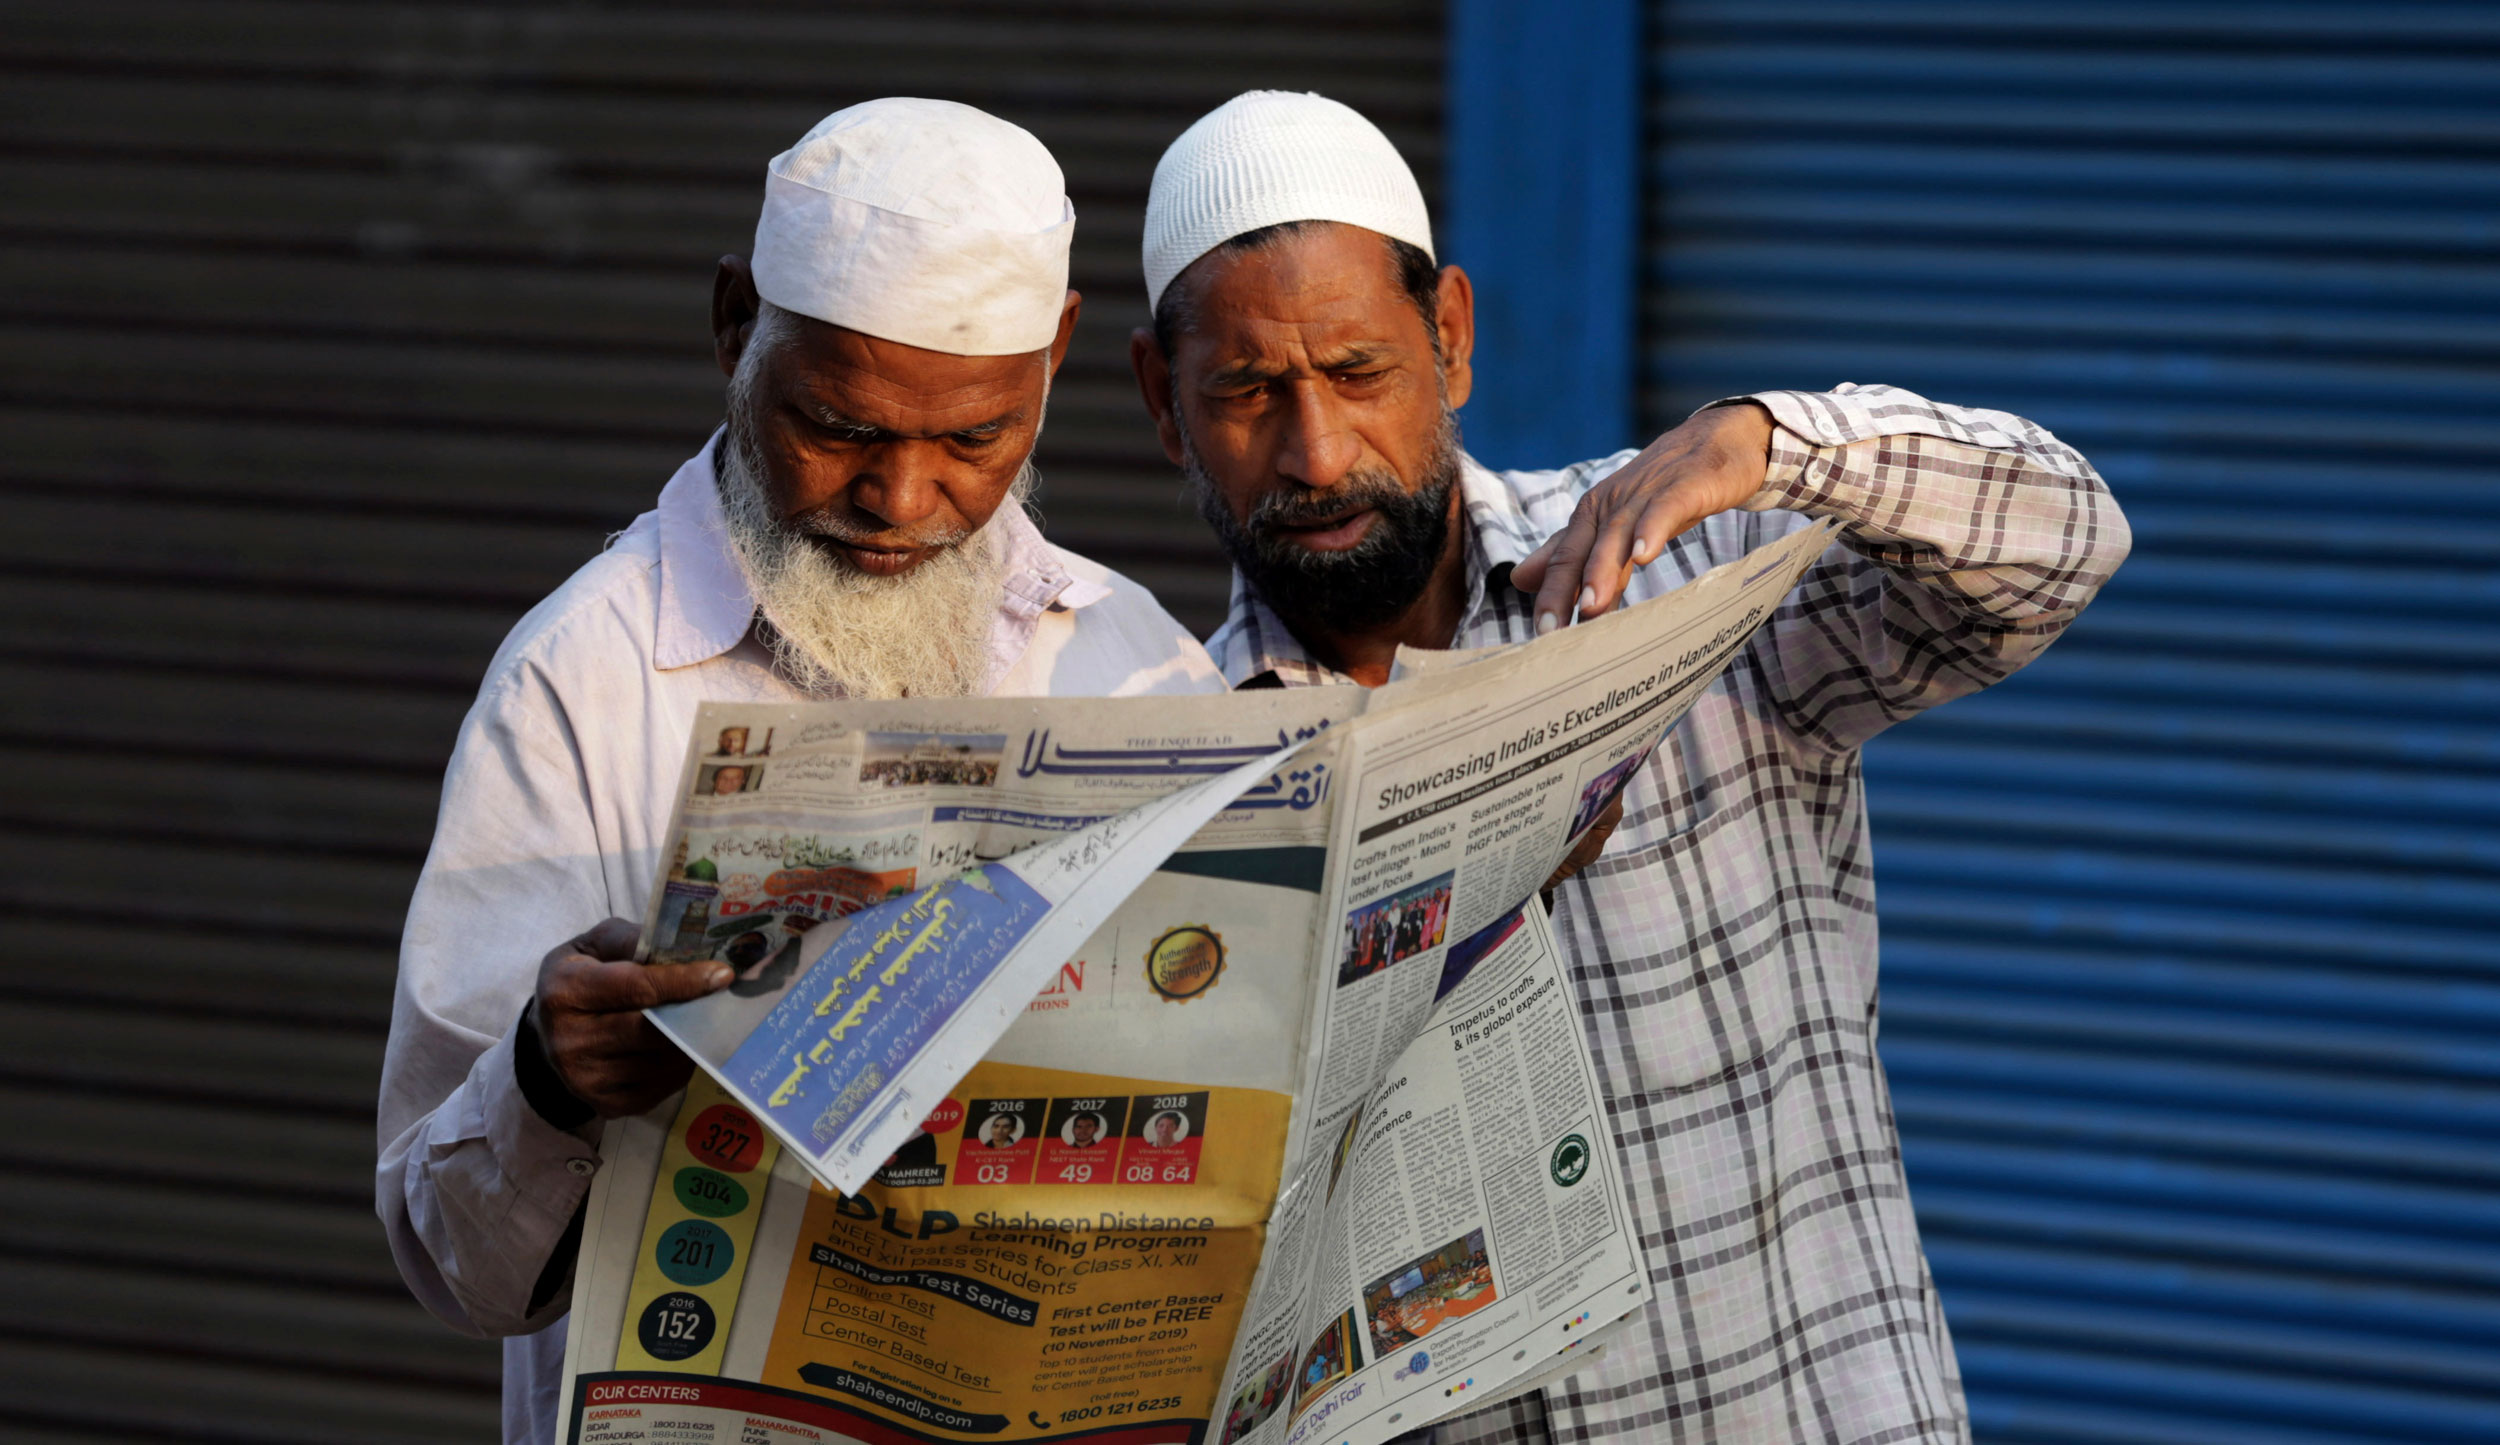 People read about the Supreme Court's verdict on the Ayodhya dispute in a newspaper in Ayodhya on Sunday, November 10, 2019.